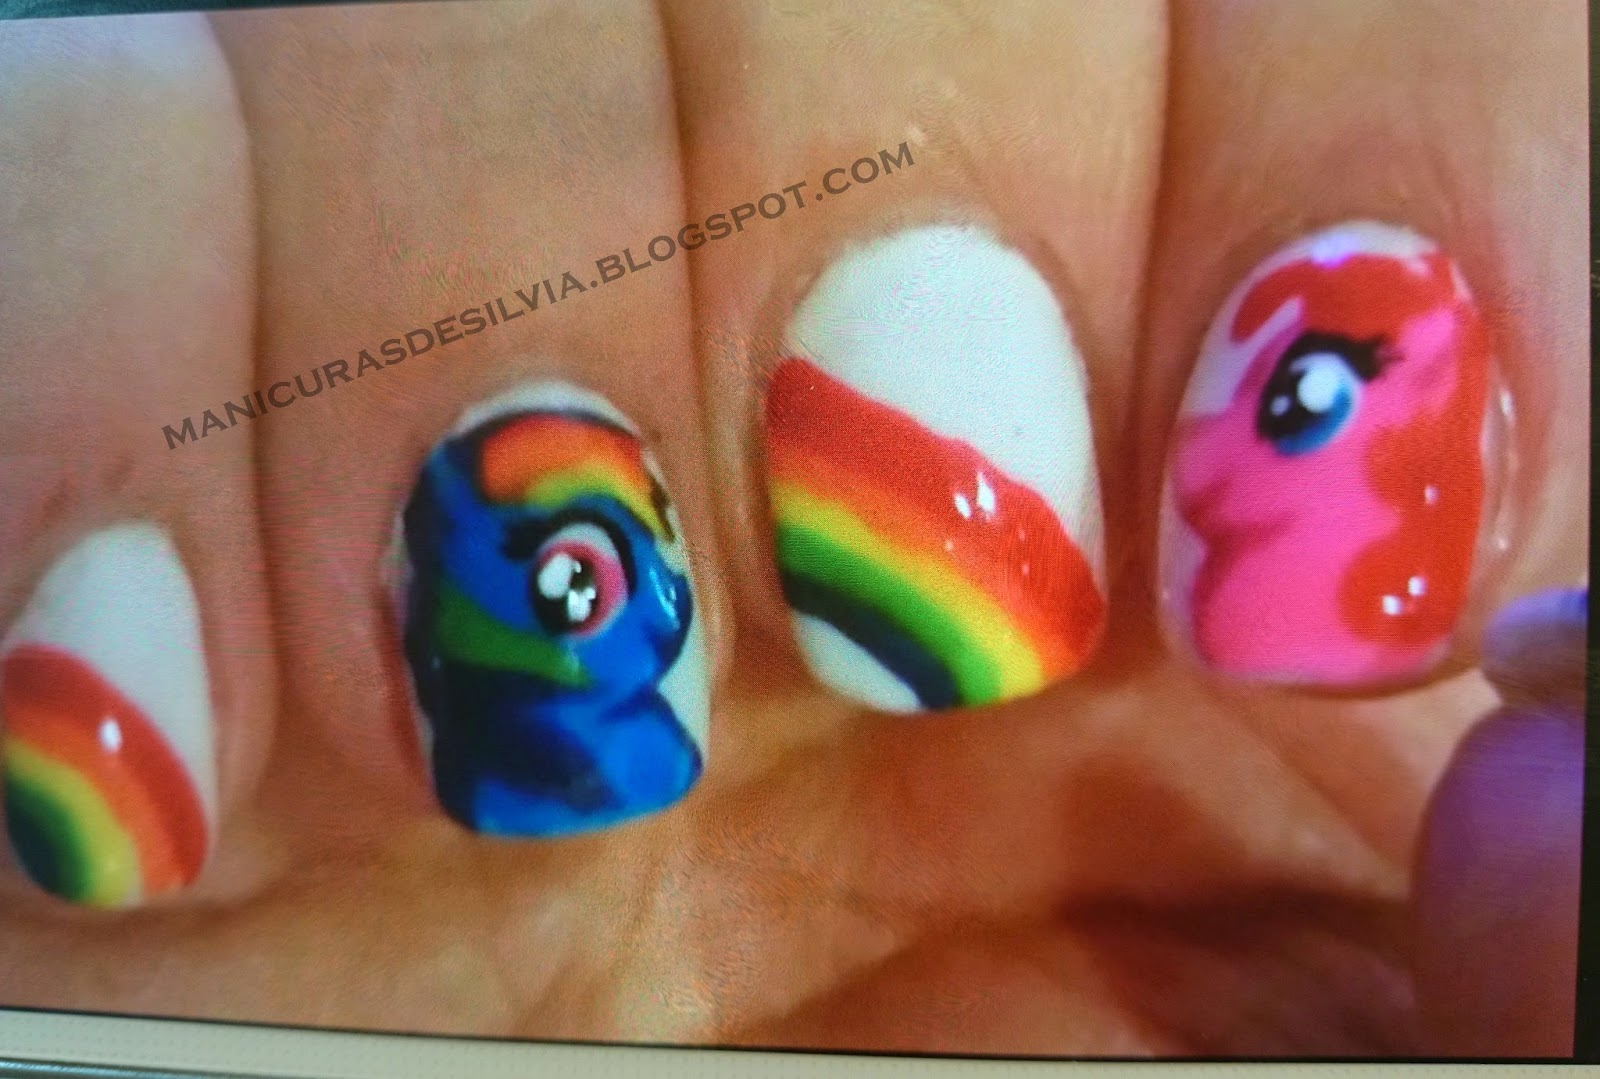 Uñas de My Little Pony (My Little Pony nails)